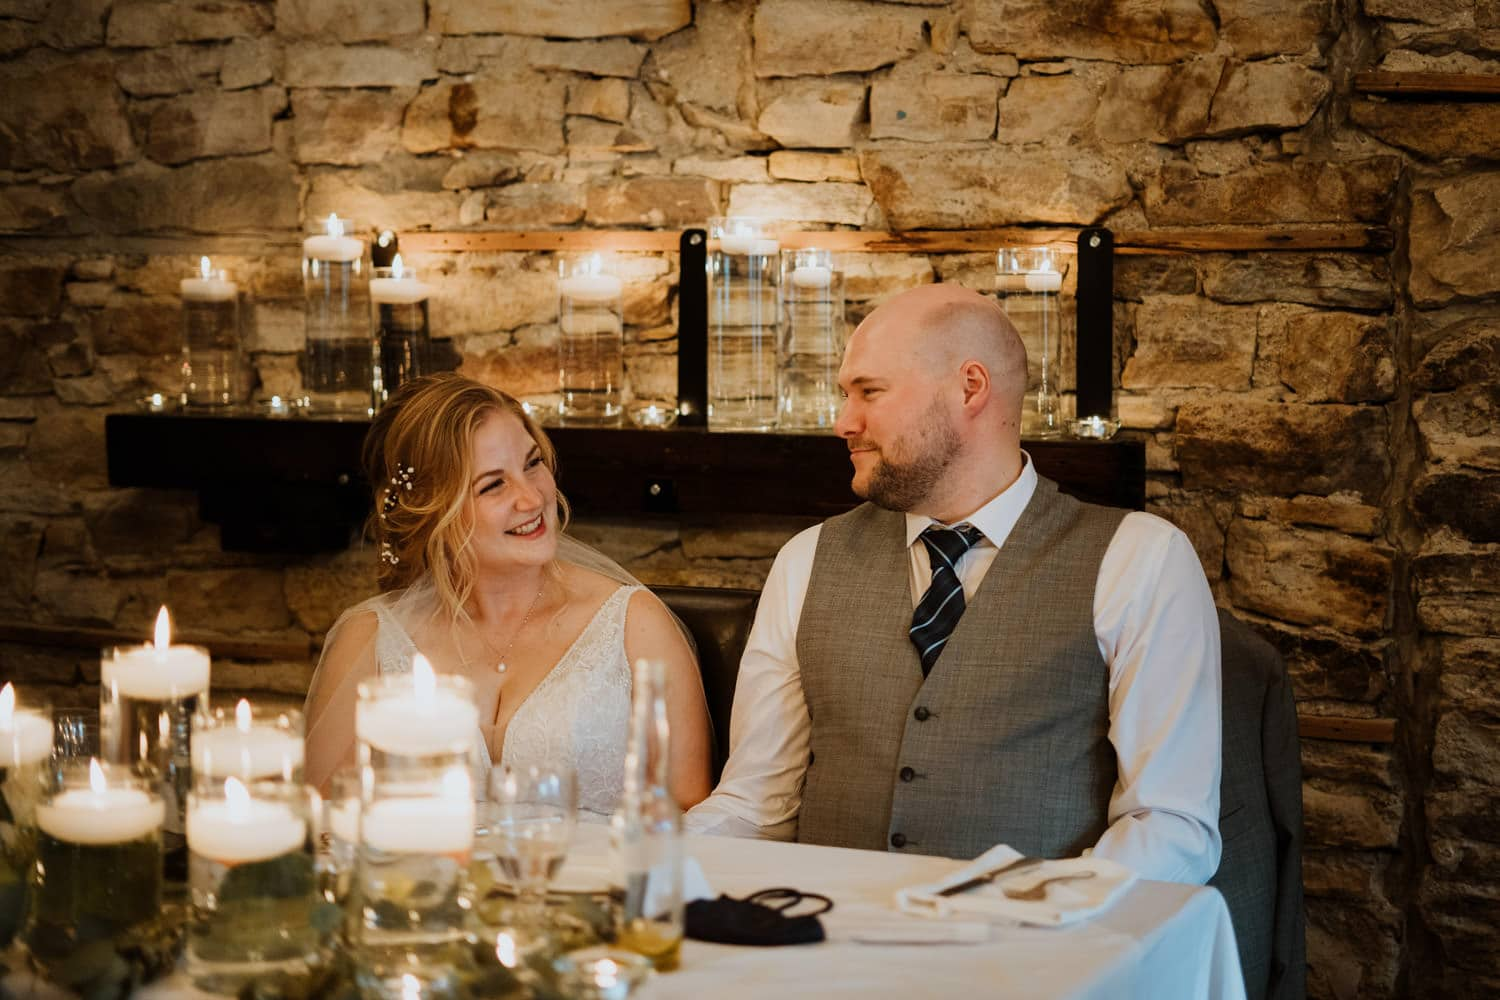 couple laugh during their reception at the stone cellar in perth